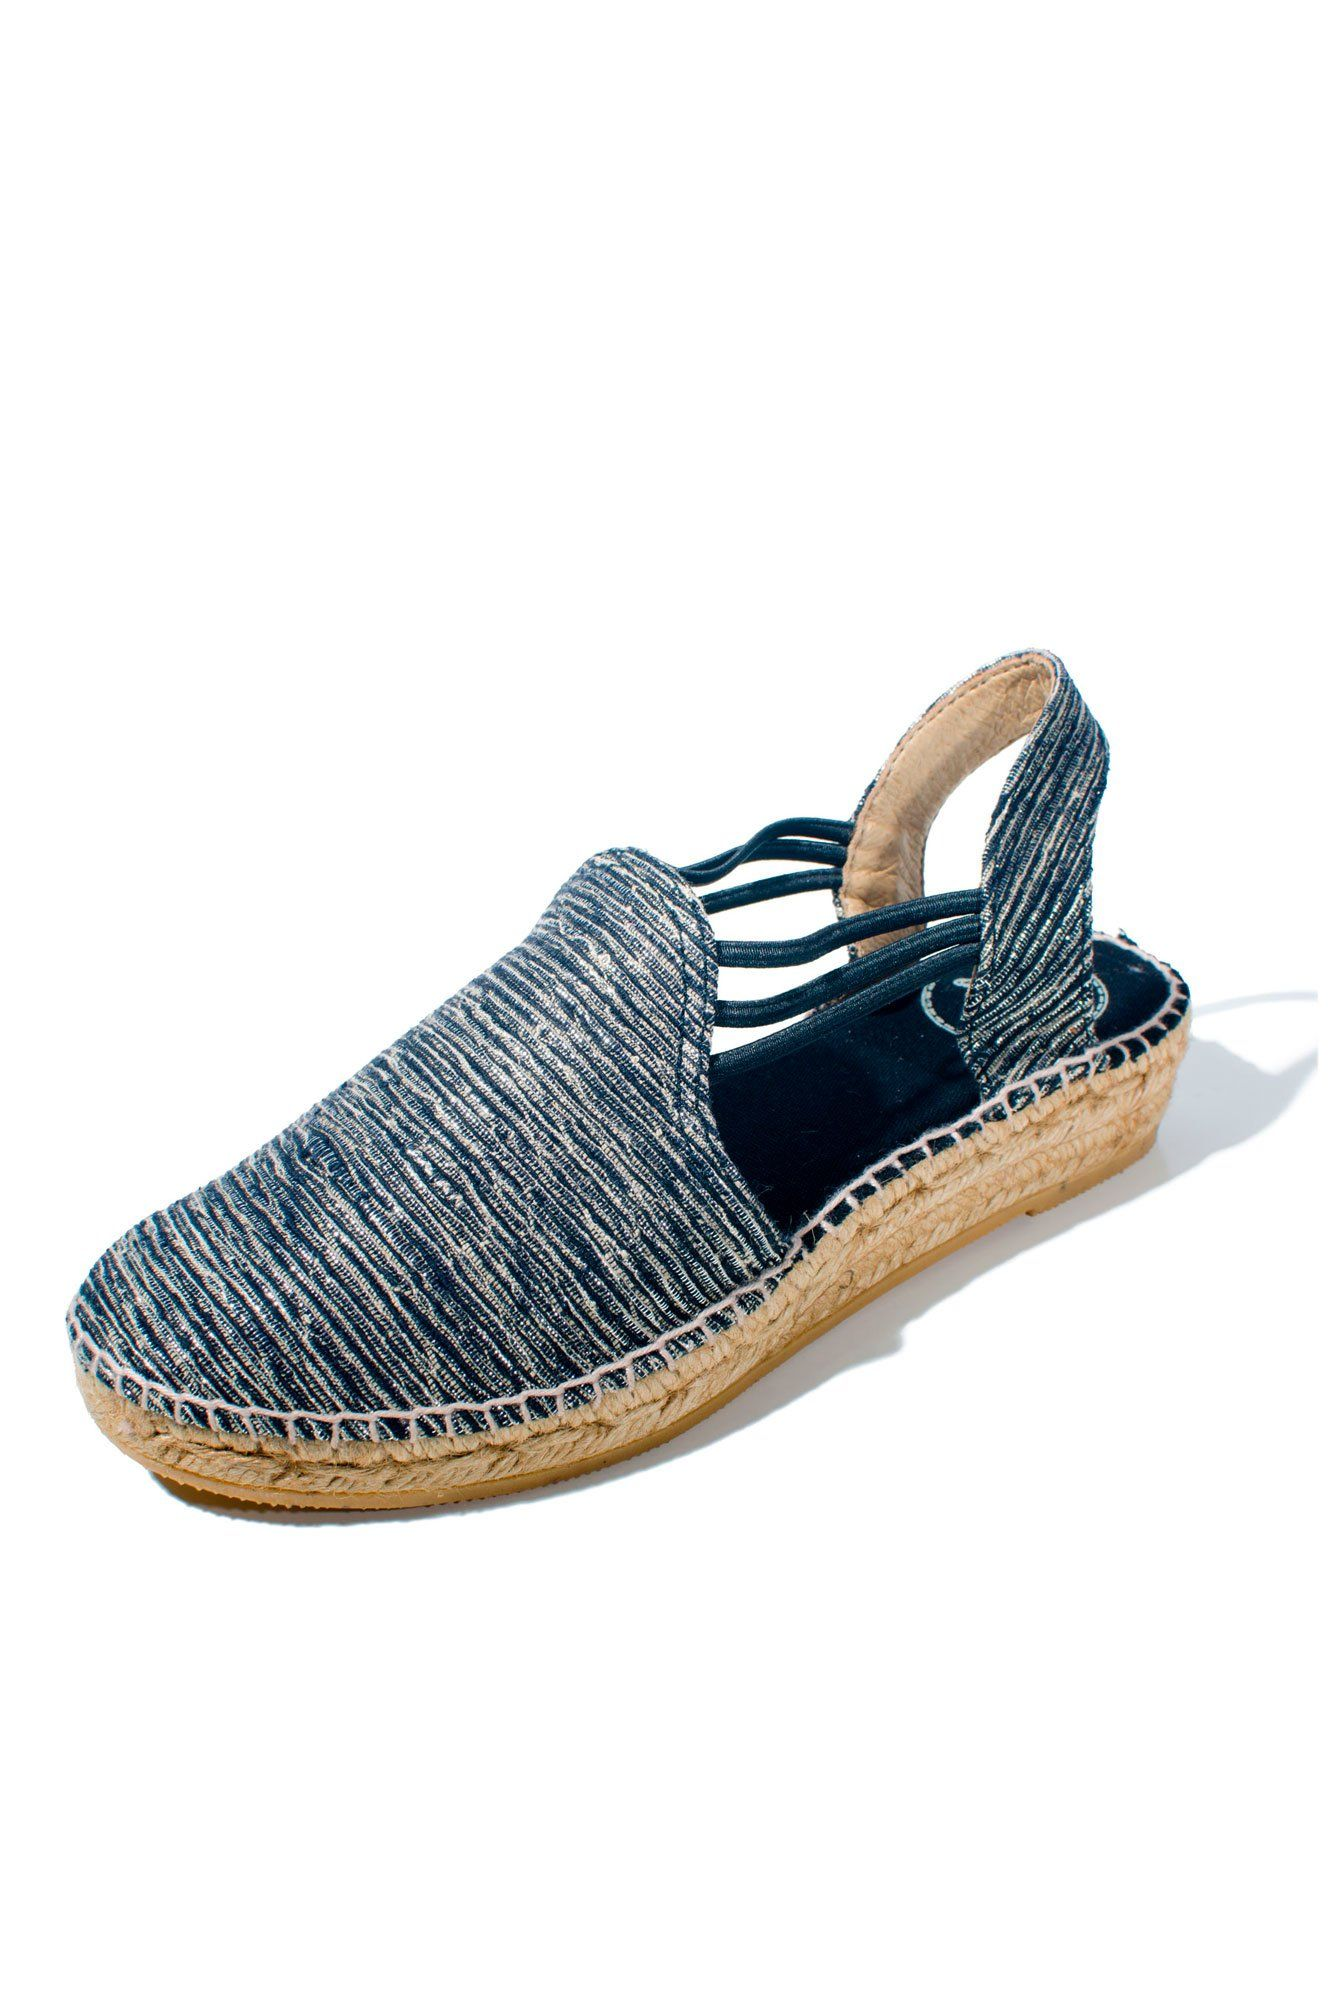 5645cfdc Toni Pons - Noa Closed Toe Espadrille Shoe in Black (Noa) | En los ...